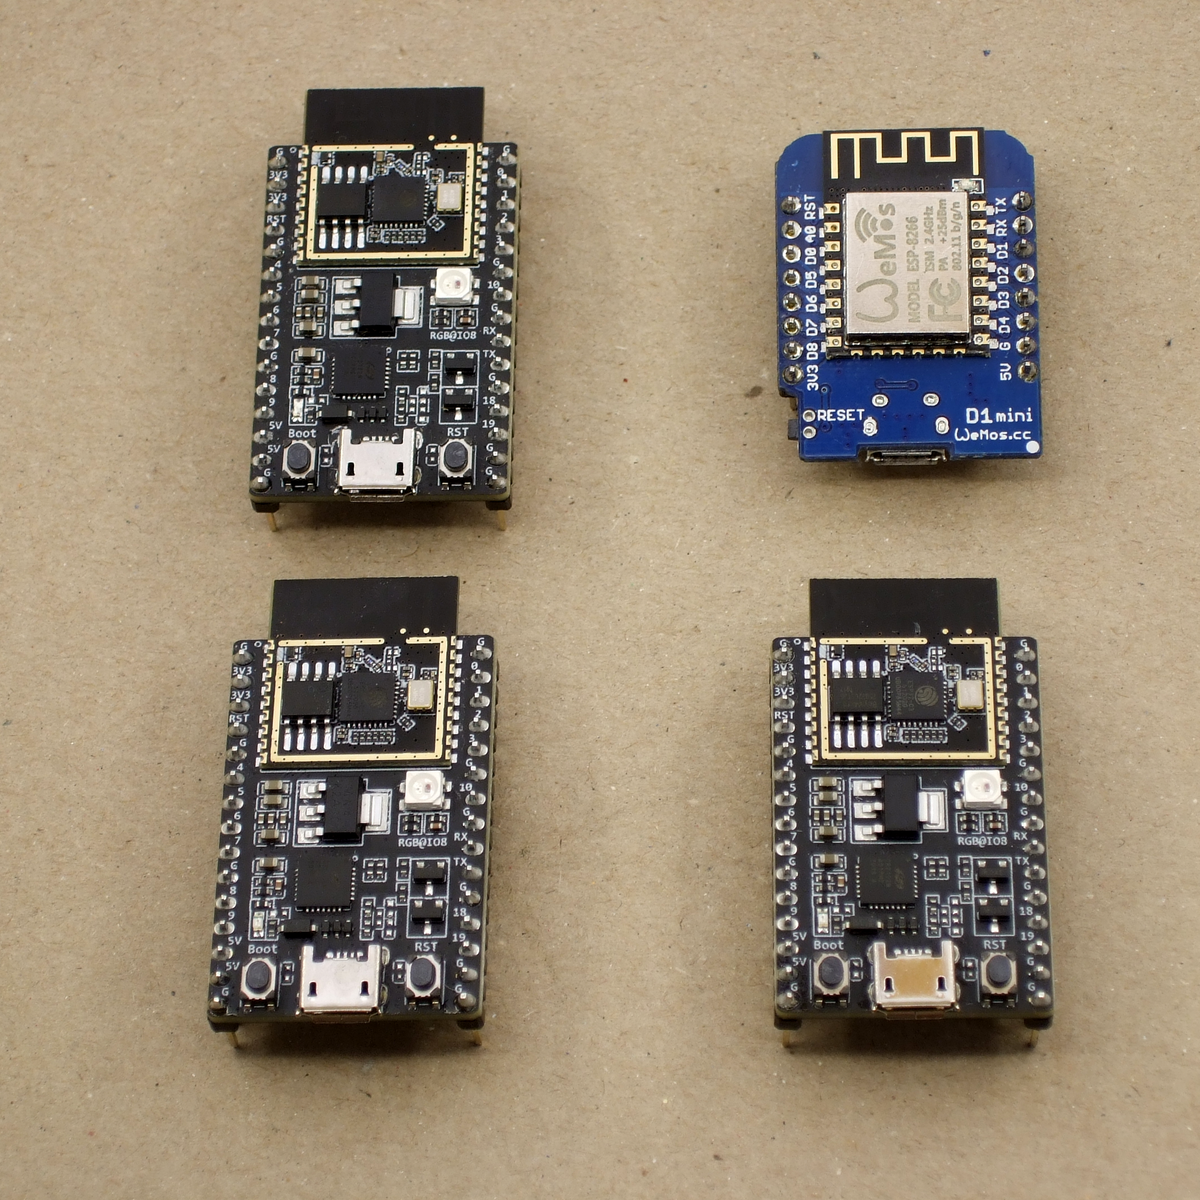 Hands-On: The RISC-V ESP32-C3 Will Be Your New ESP8266